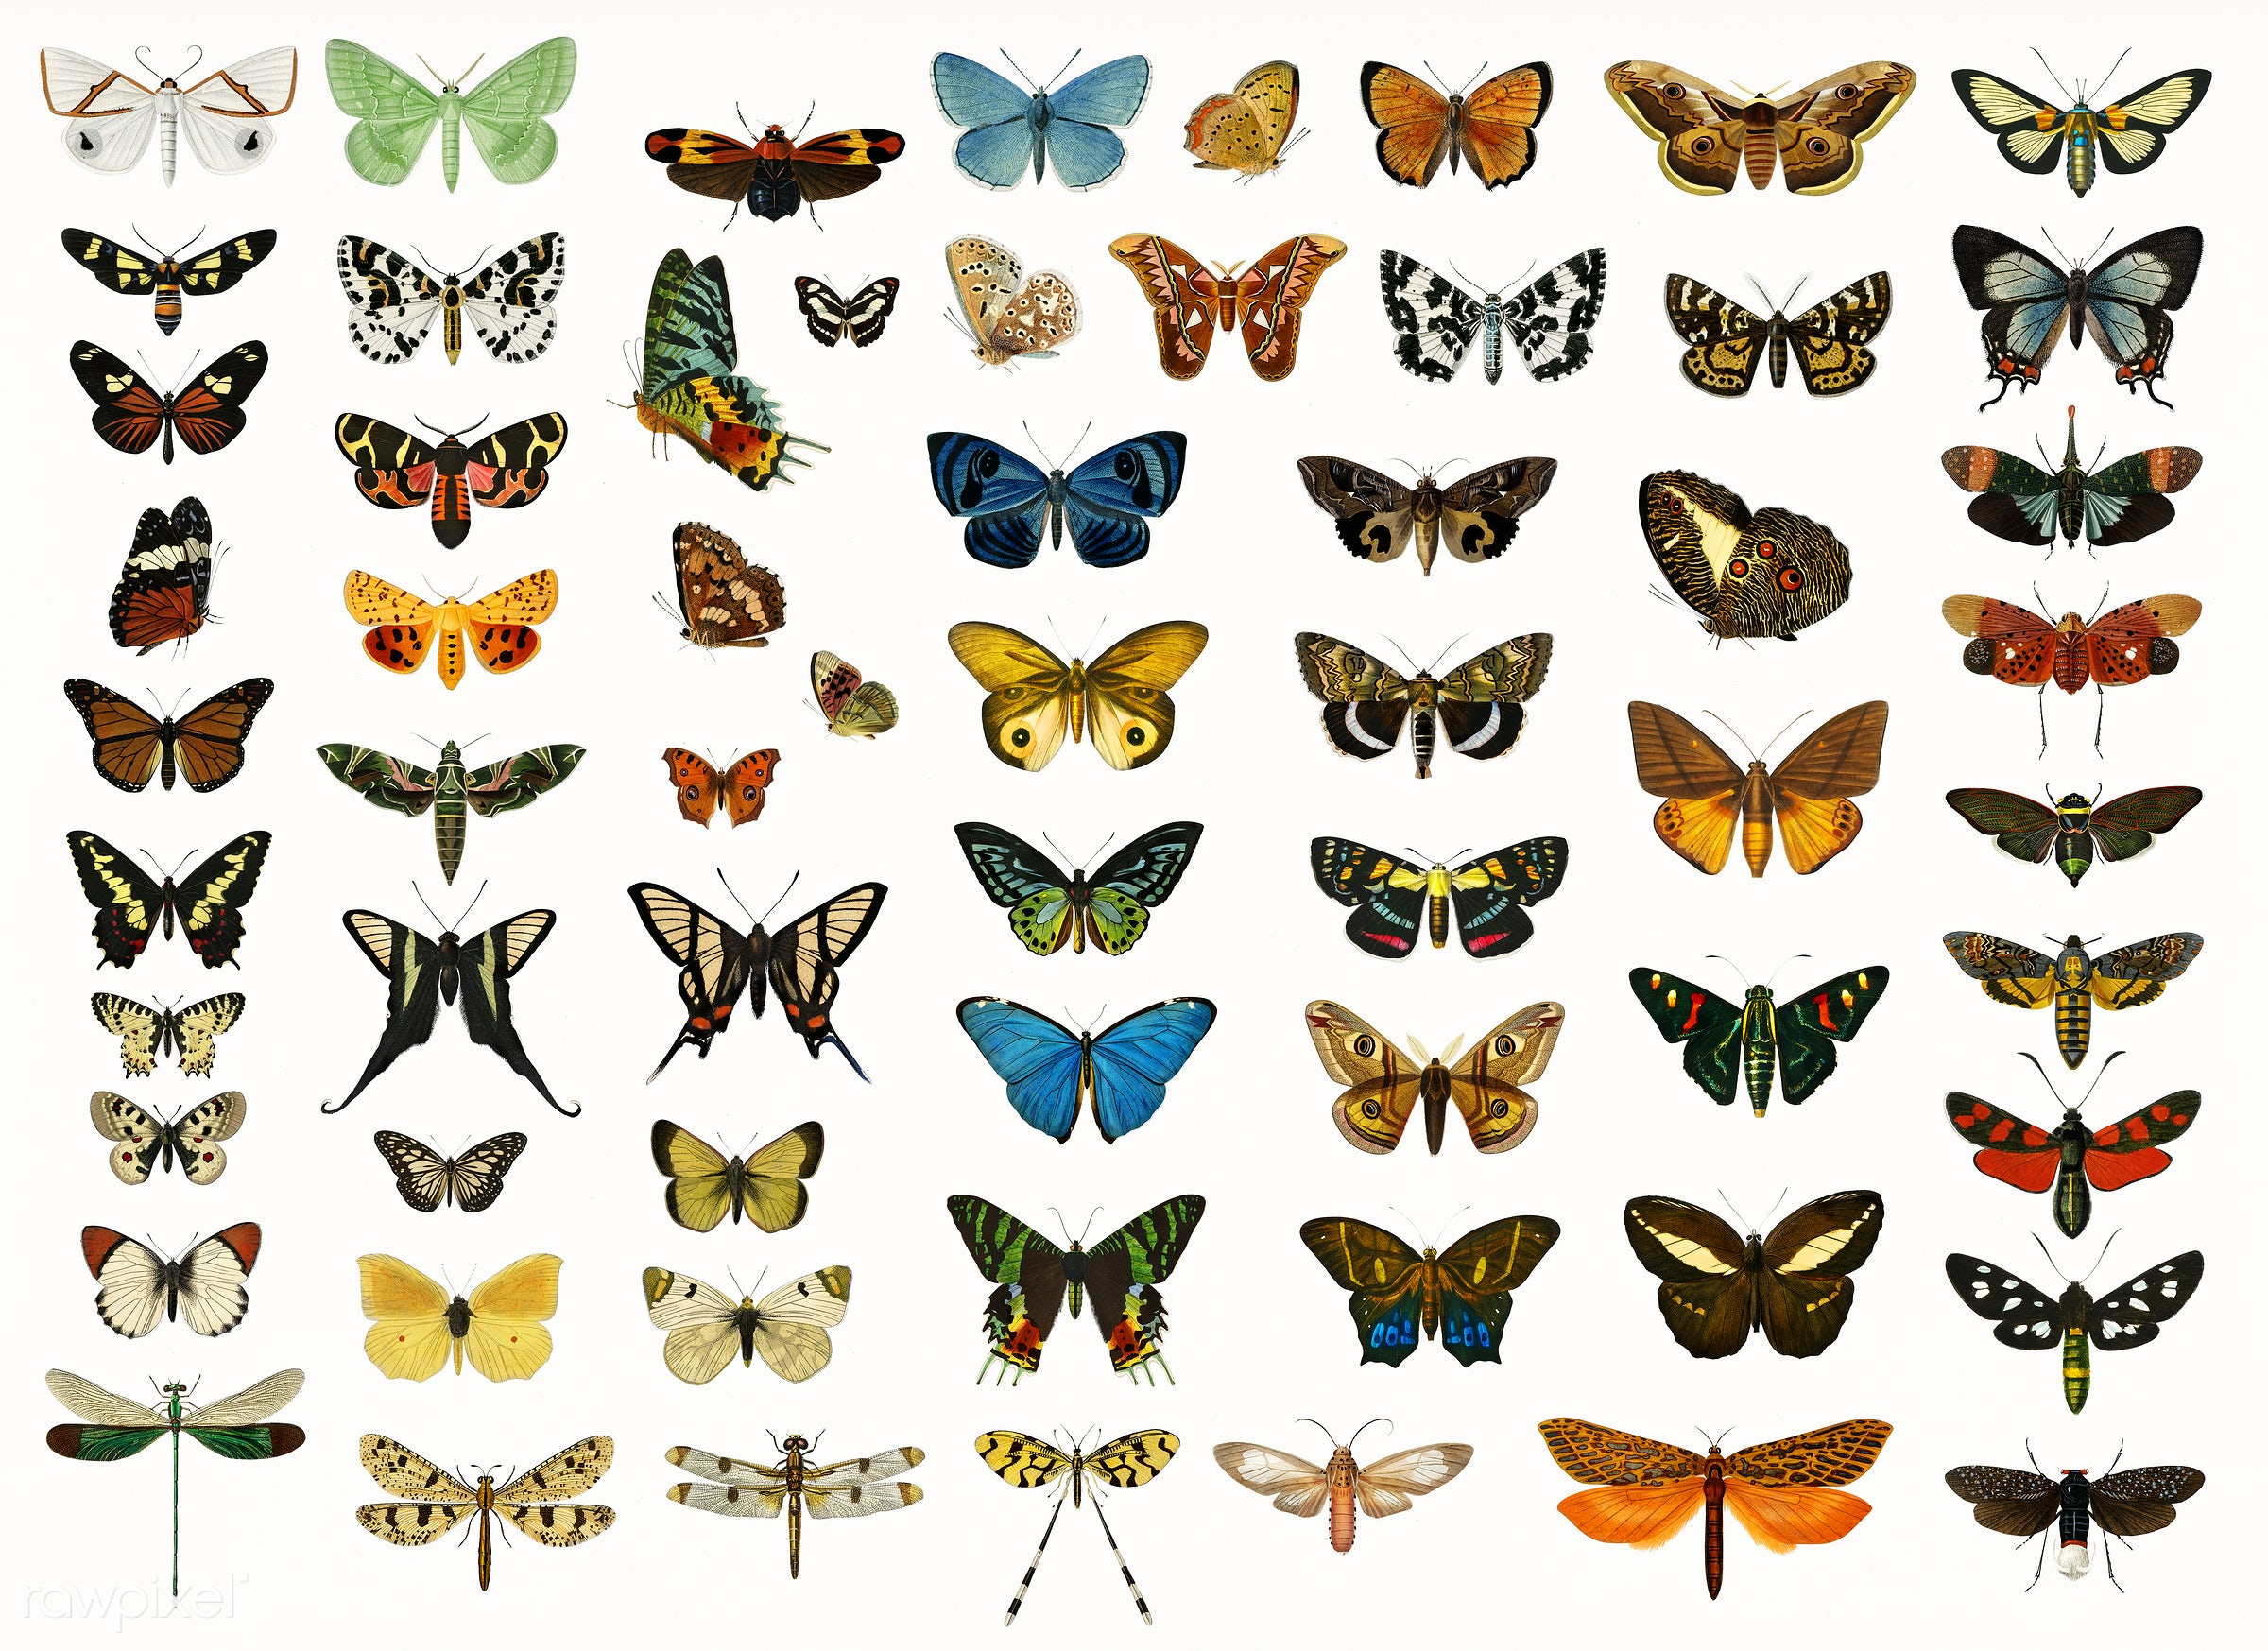 Different types of butterflies and moths illustrated by Charles Dessalines D' Orbigny (1806-1876). Digitally enhanced...